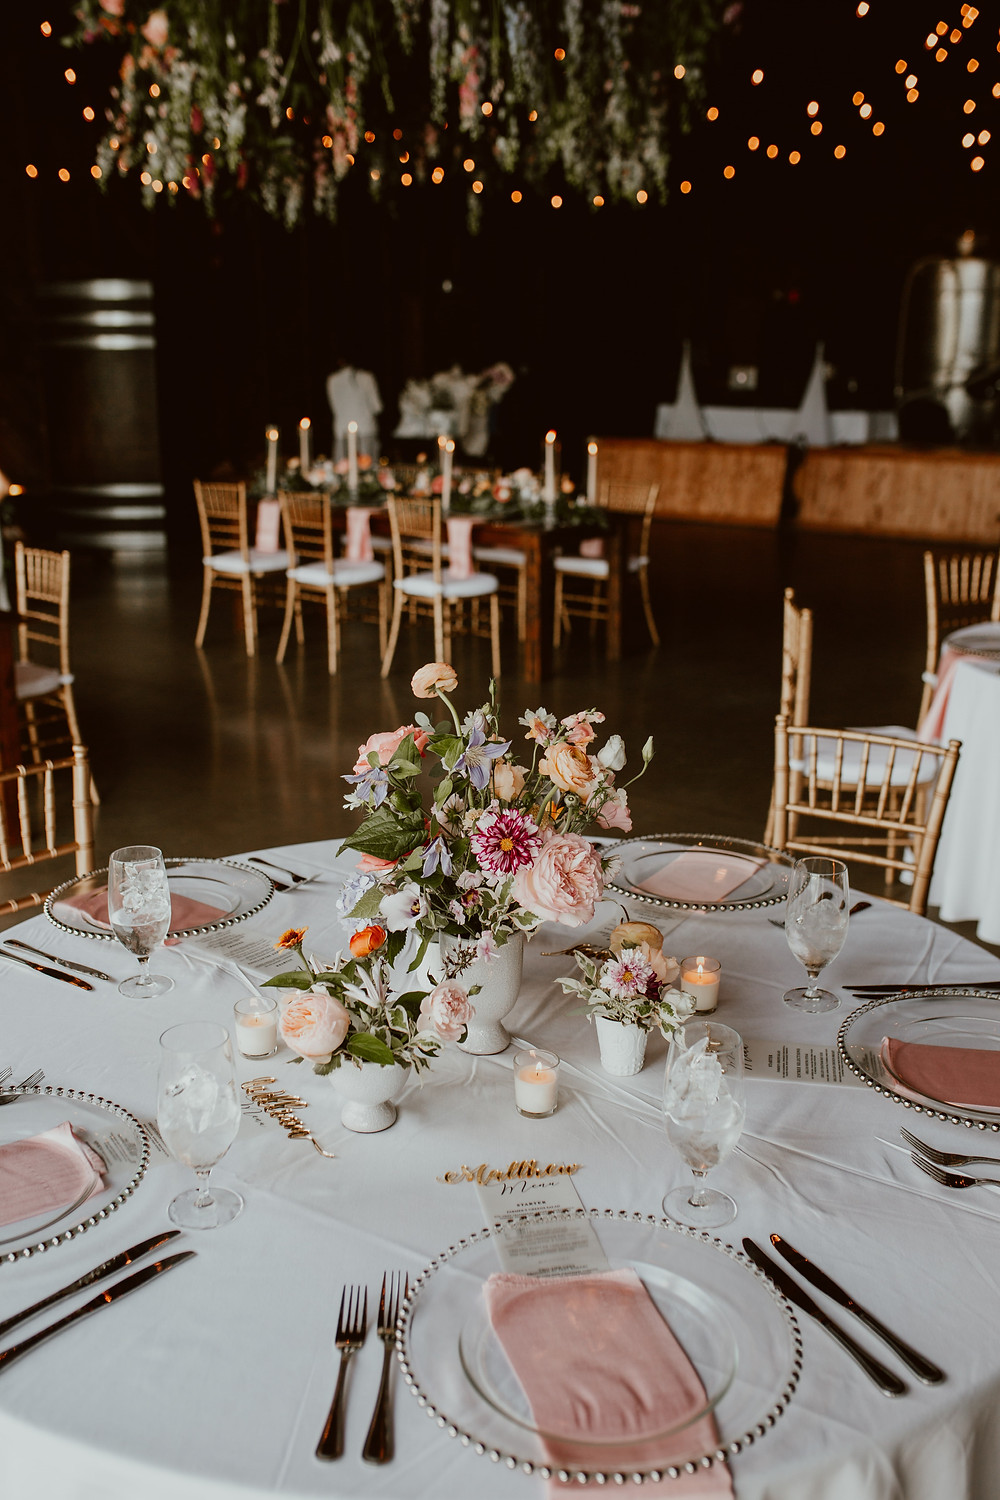 Colorful wedding centerpieces at Saltwater Farm Vineyard